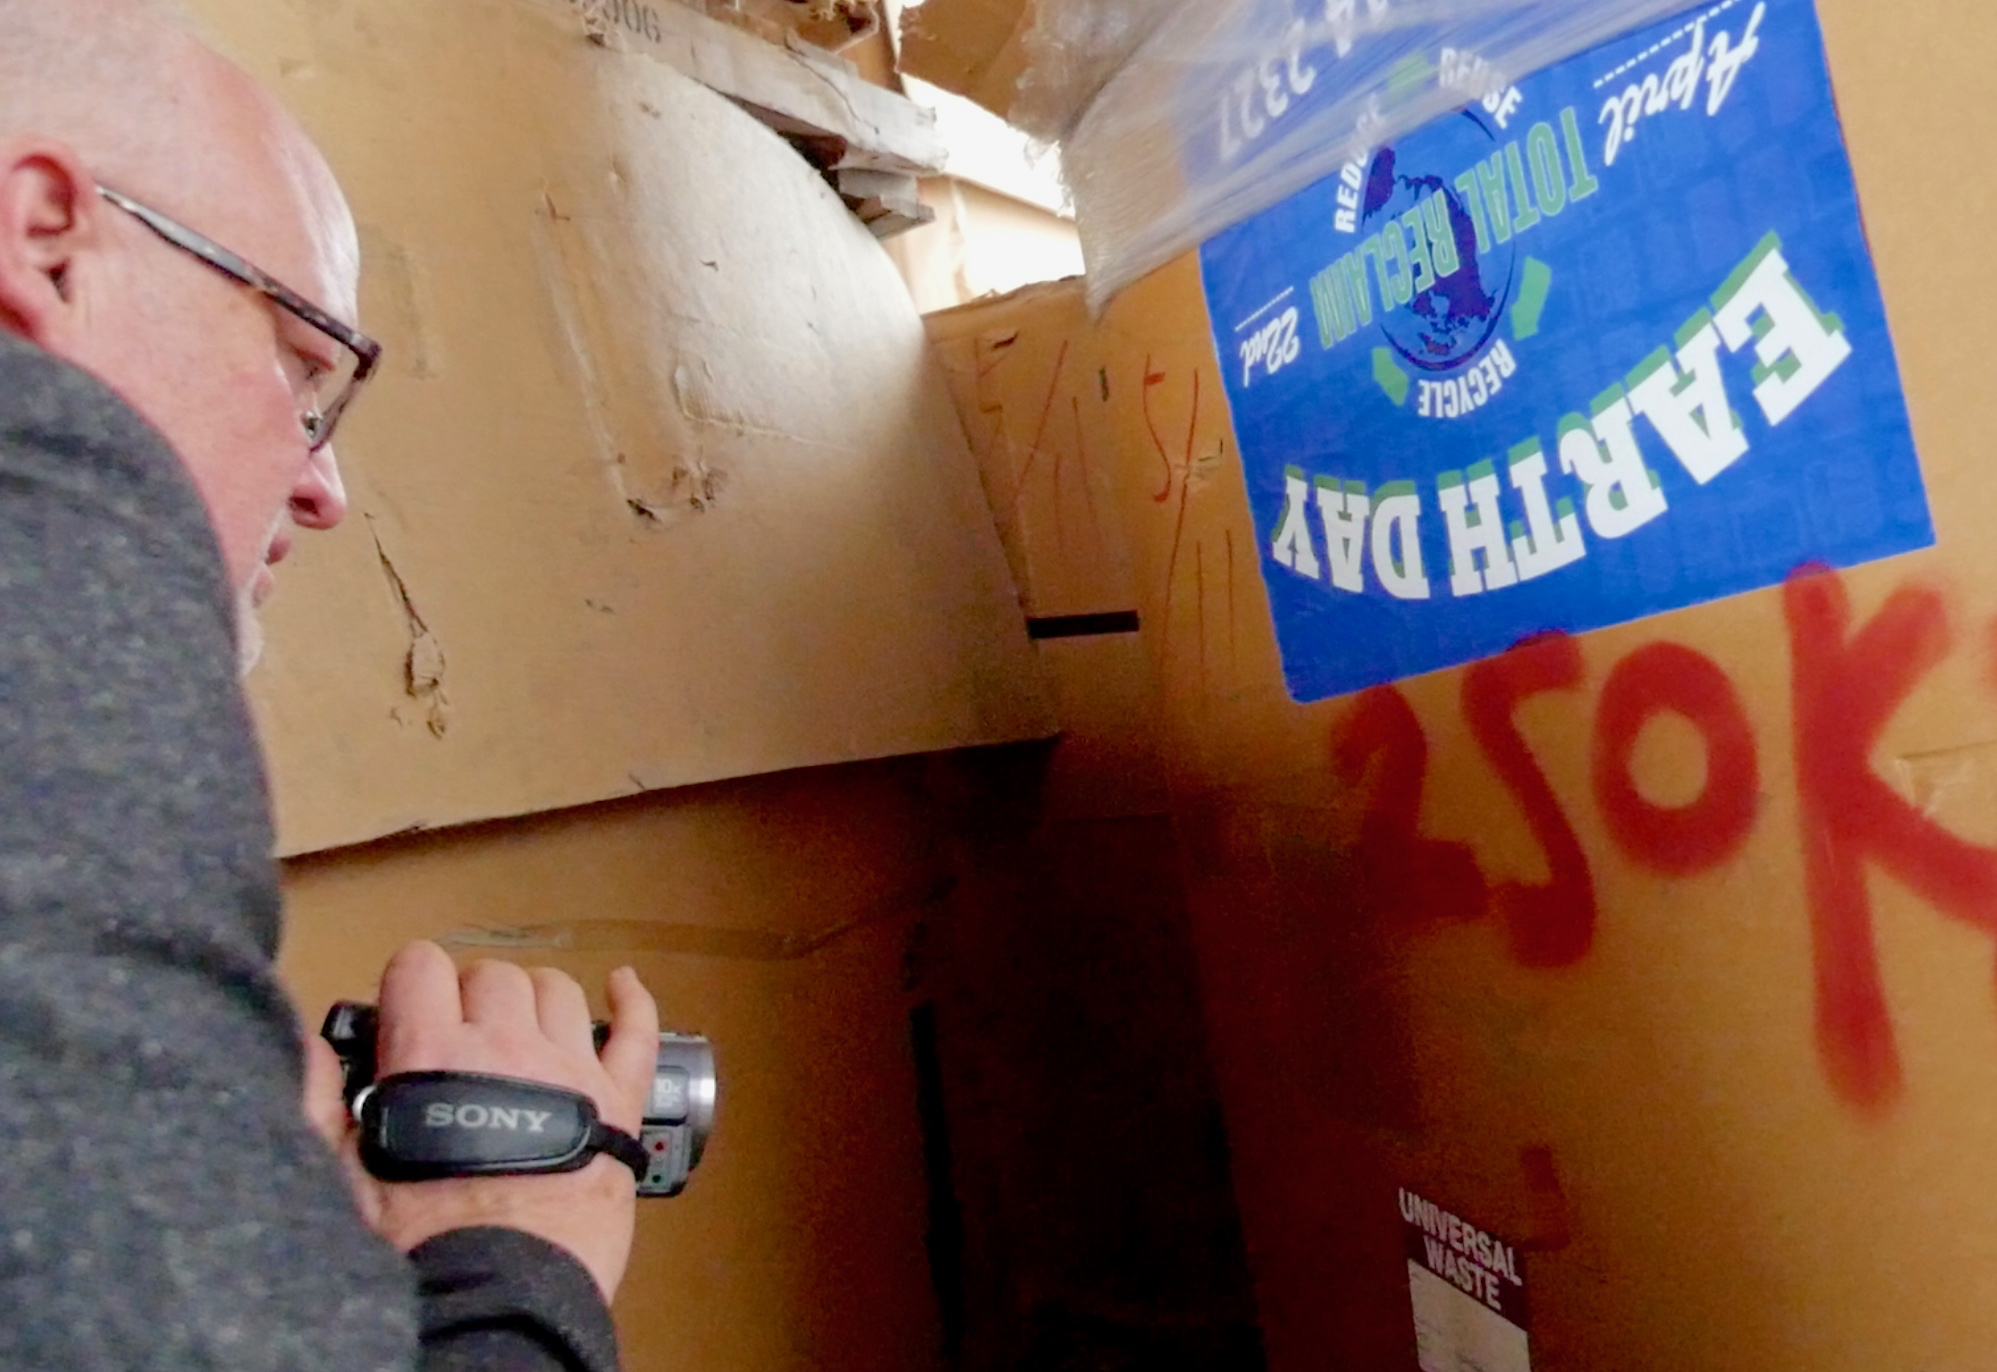 BAN's Jim Puckett documenting Total Reclaim's exports in Hong Kong electronics junk yard to prove that their export denials were false. Note Total Reclaim's Earth Day collection event stickers. Copyright PBS. March 2016.